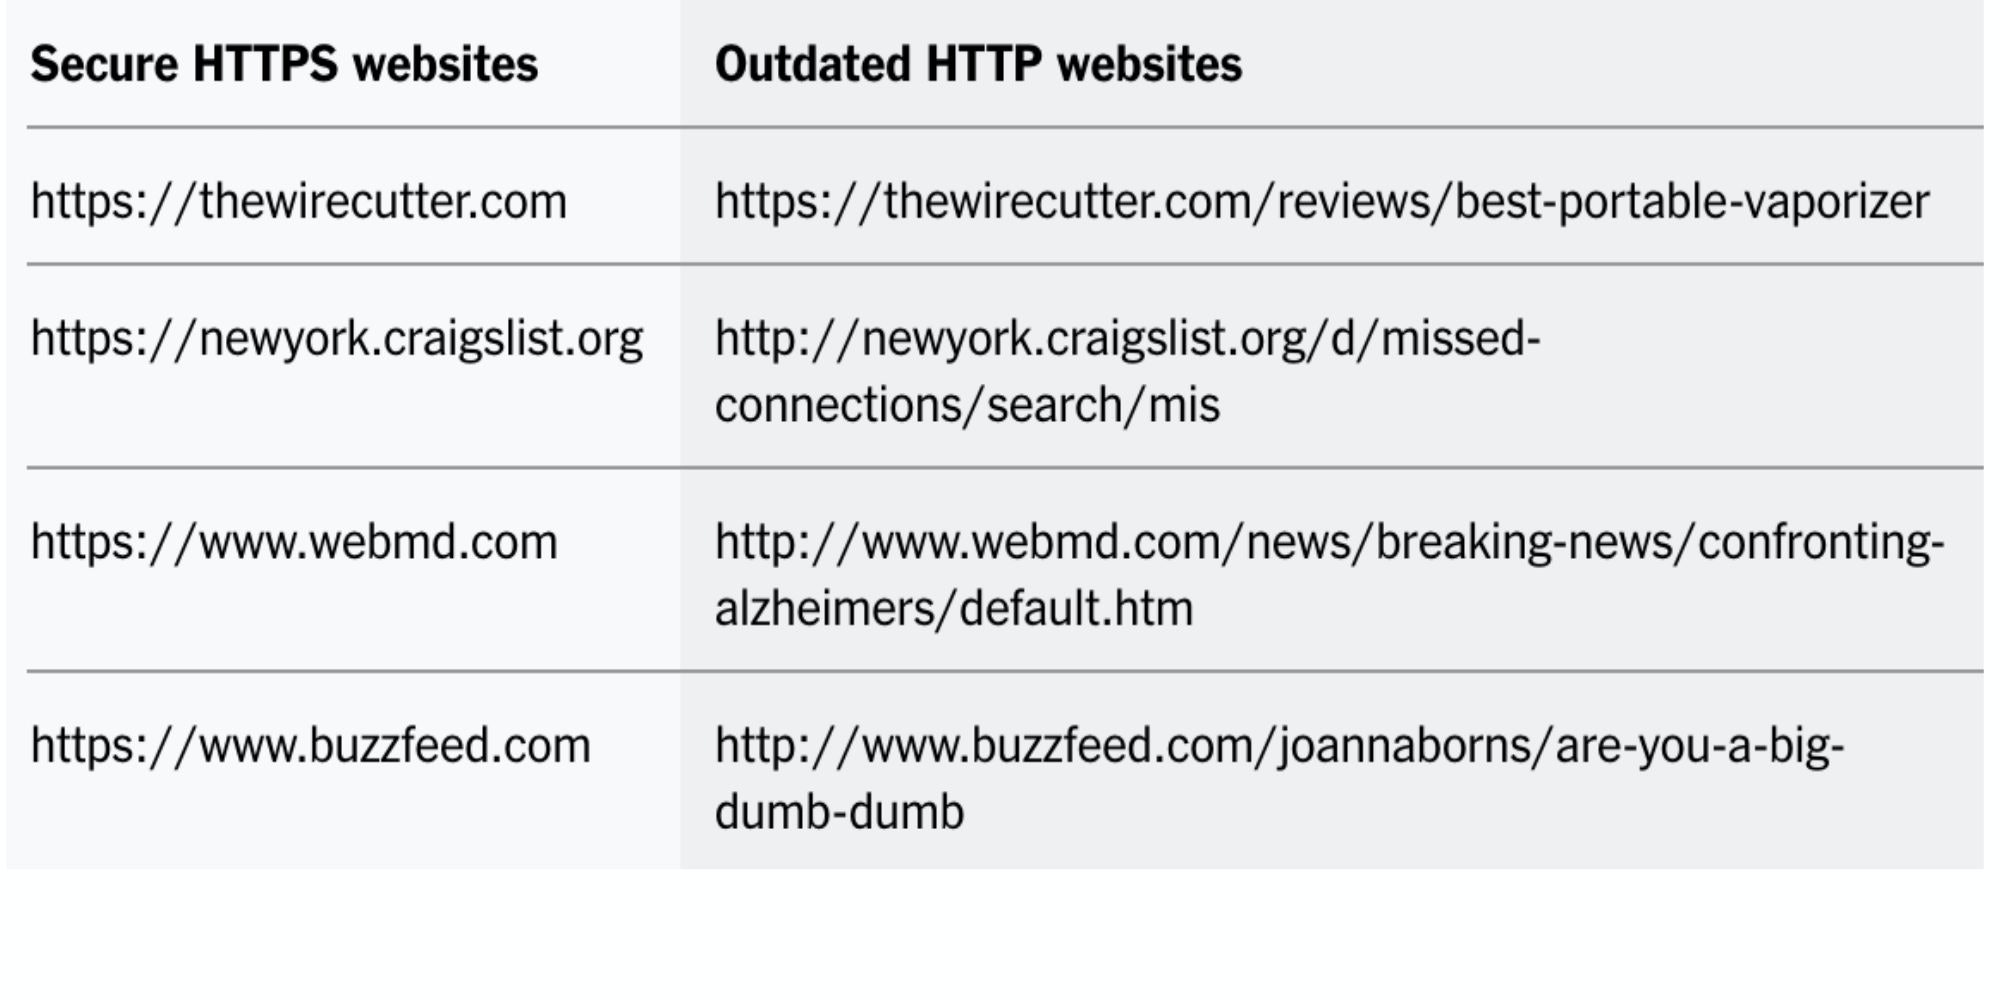 Even without a VPN, websites like these that default to HTTPS give you extra privacy online. If they didn't, a lot more information about your browsing habits would be available to prying eyes, whether they be Wi-Fi operators, ISPs, or data-peeping toms.